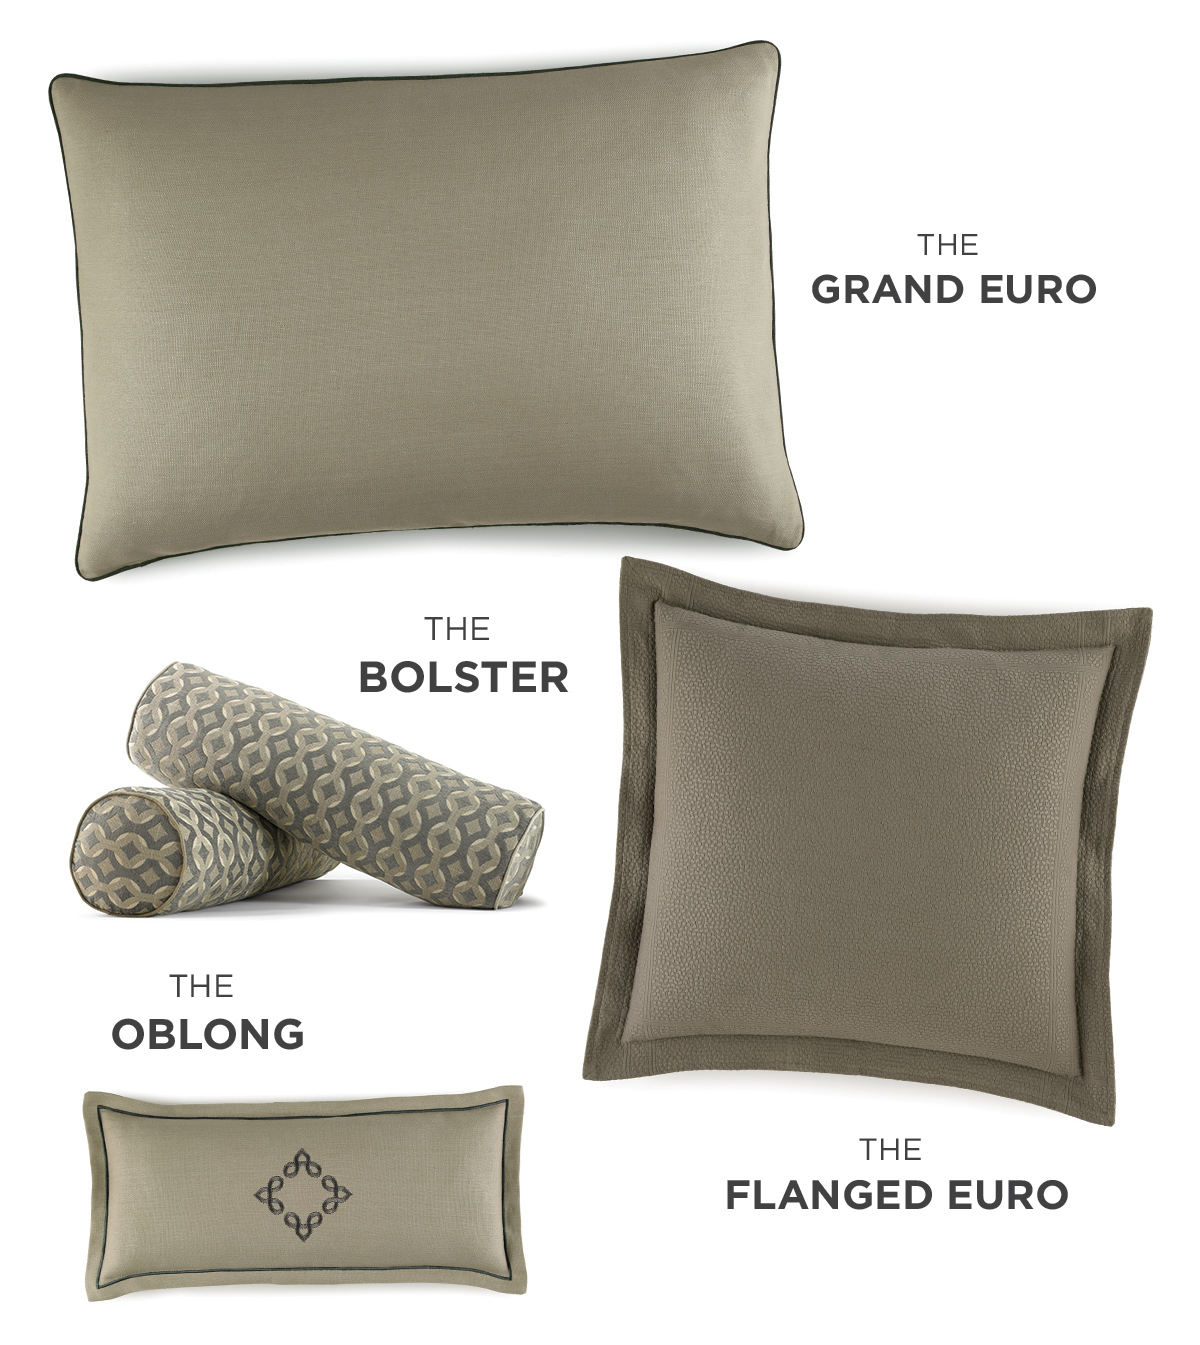 A guide to several sizes of Peacock Alley decorative pillows